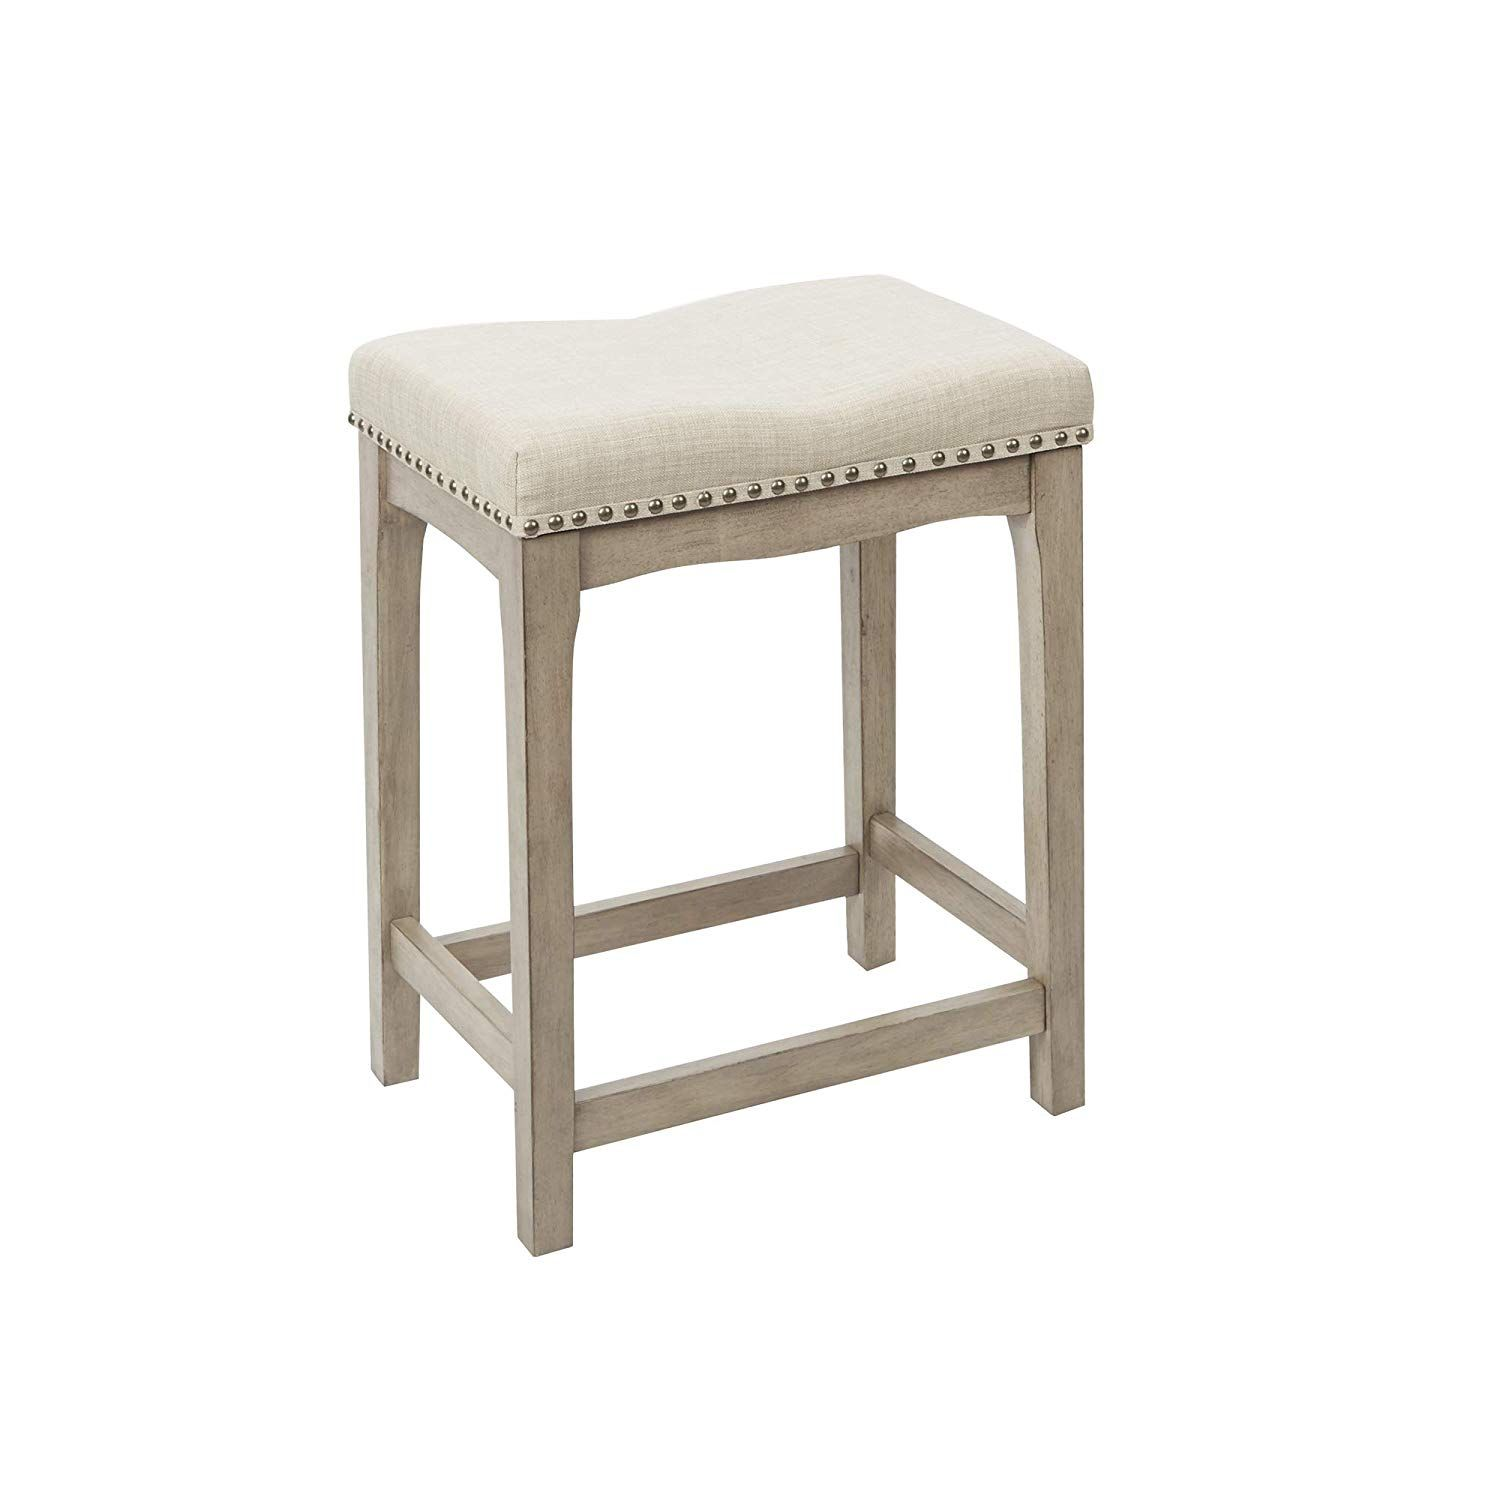 2d30ffd28afe6a027f960bbf33f3324e - Better Homes And Gardens Counter Stools